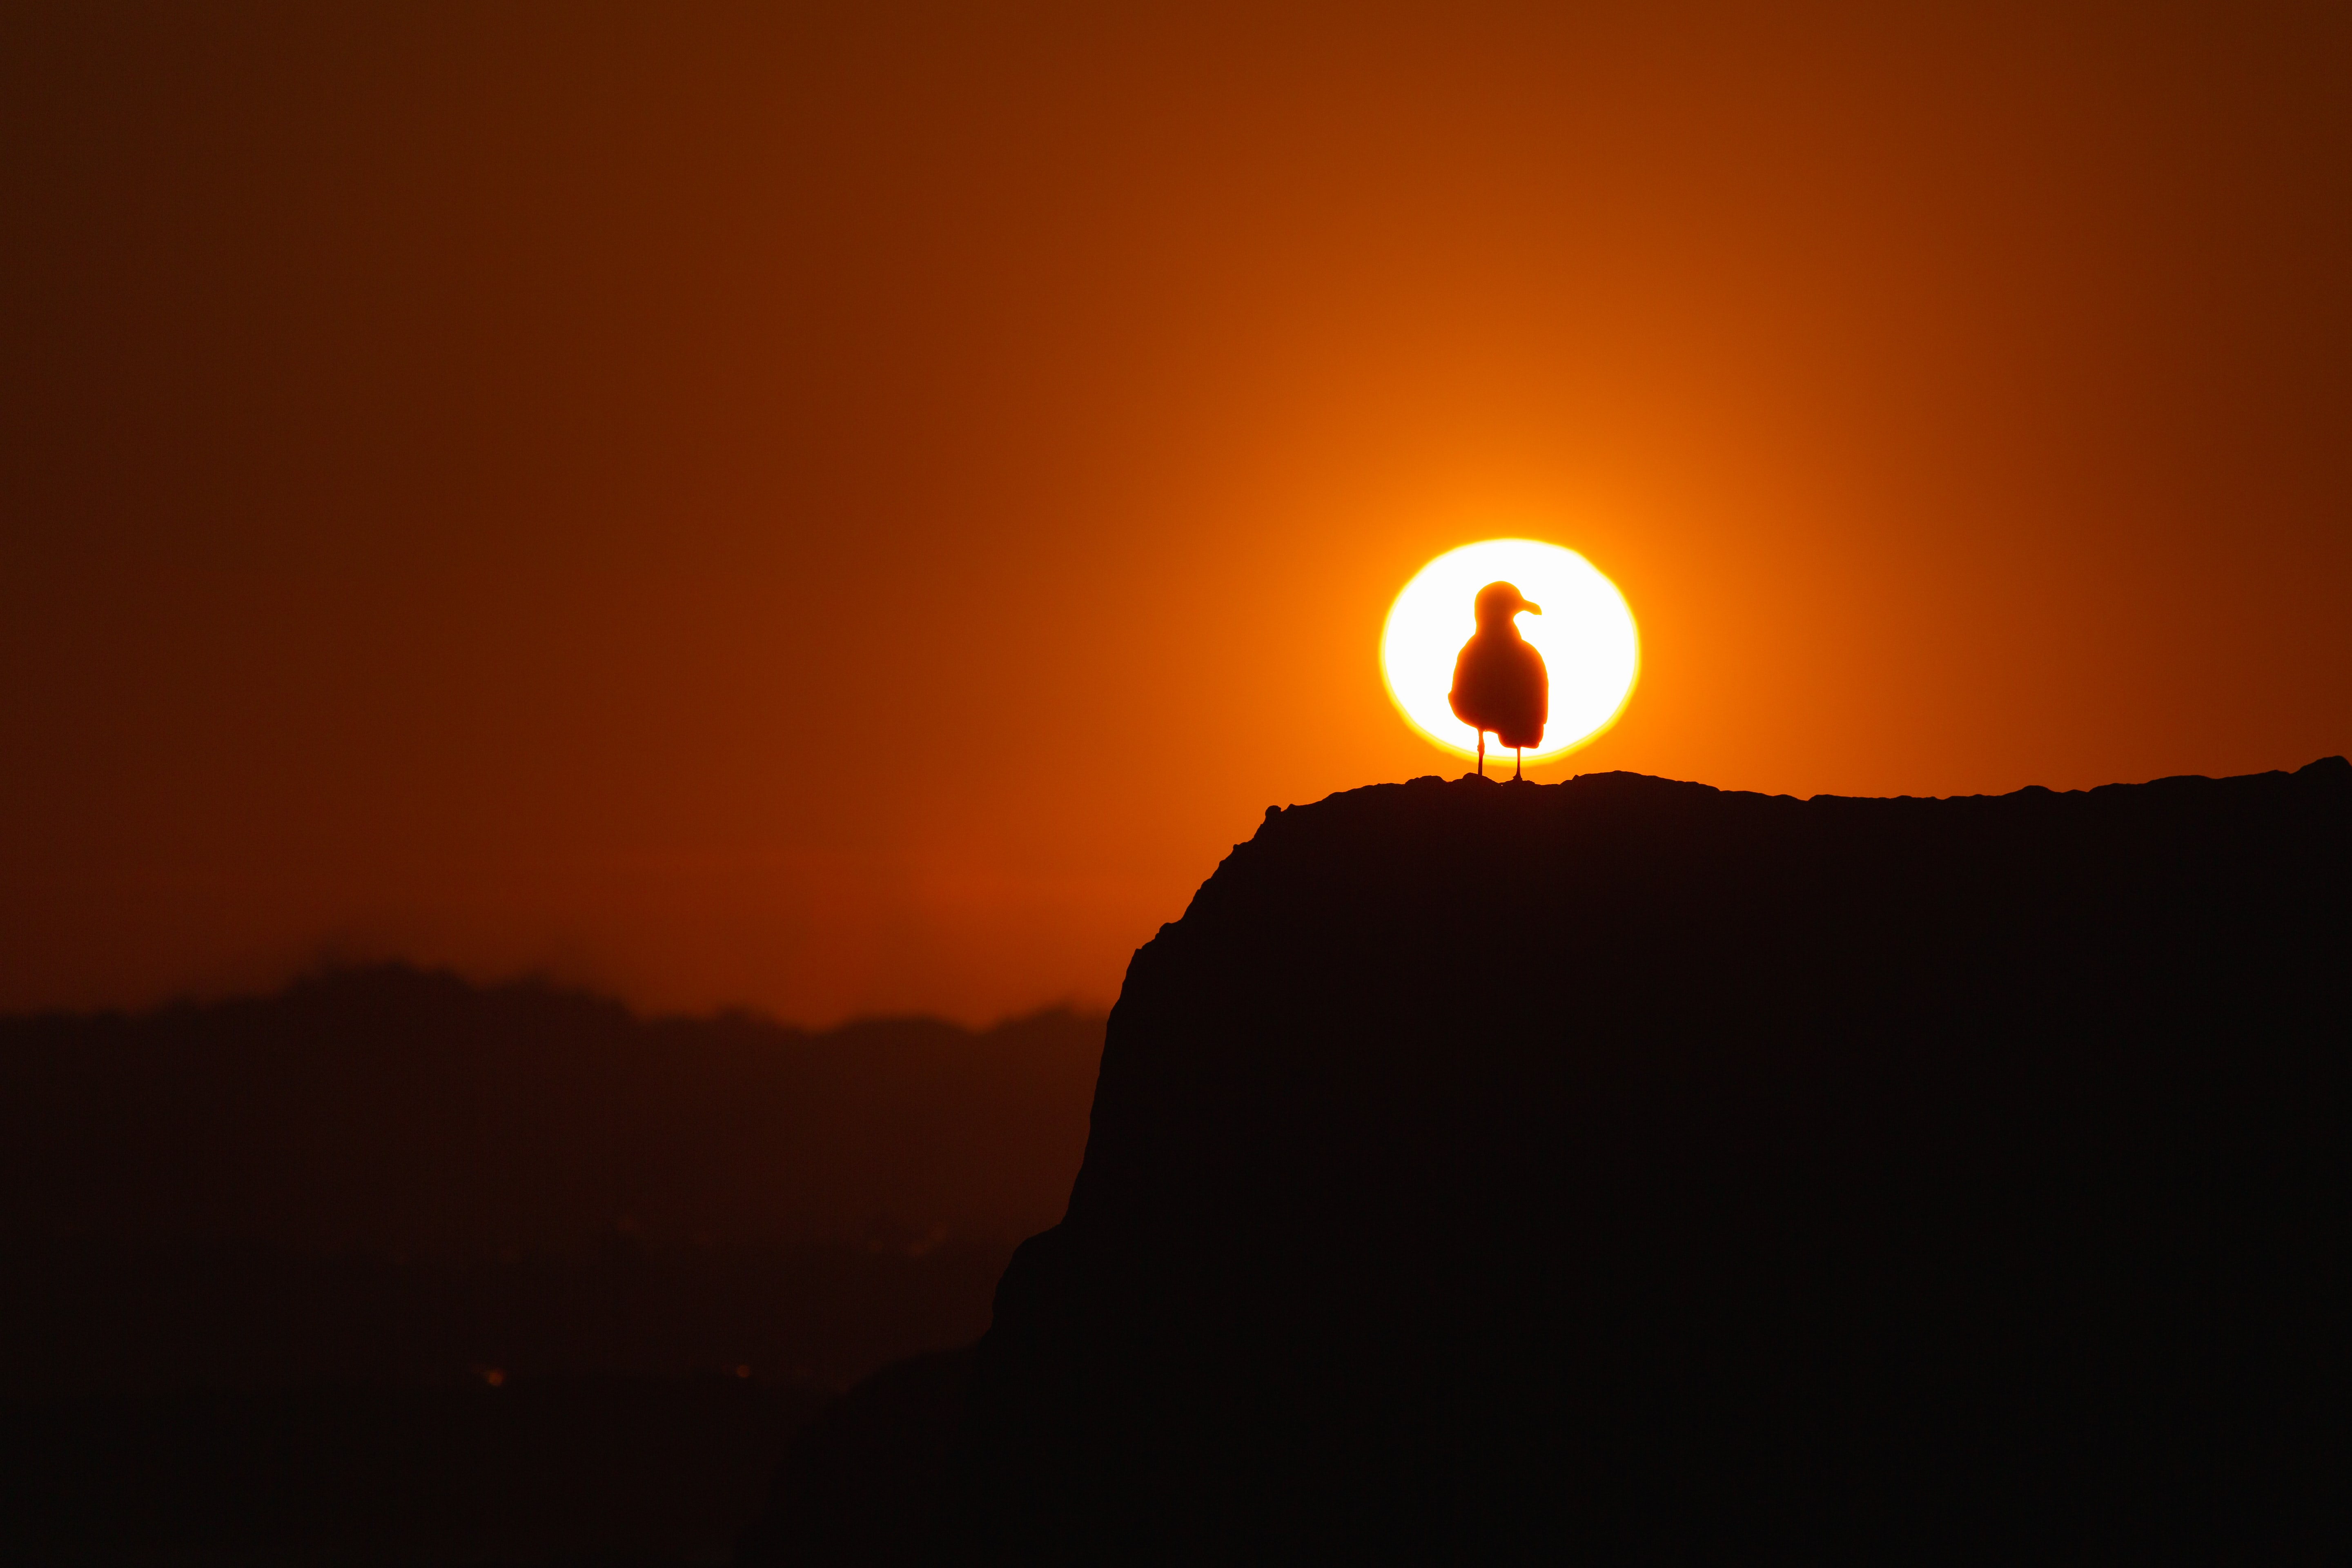 silhouette of bird on rock during golden hour